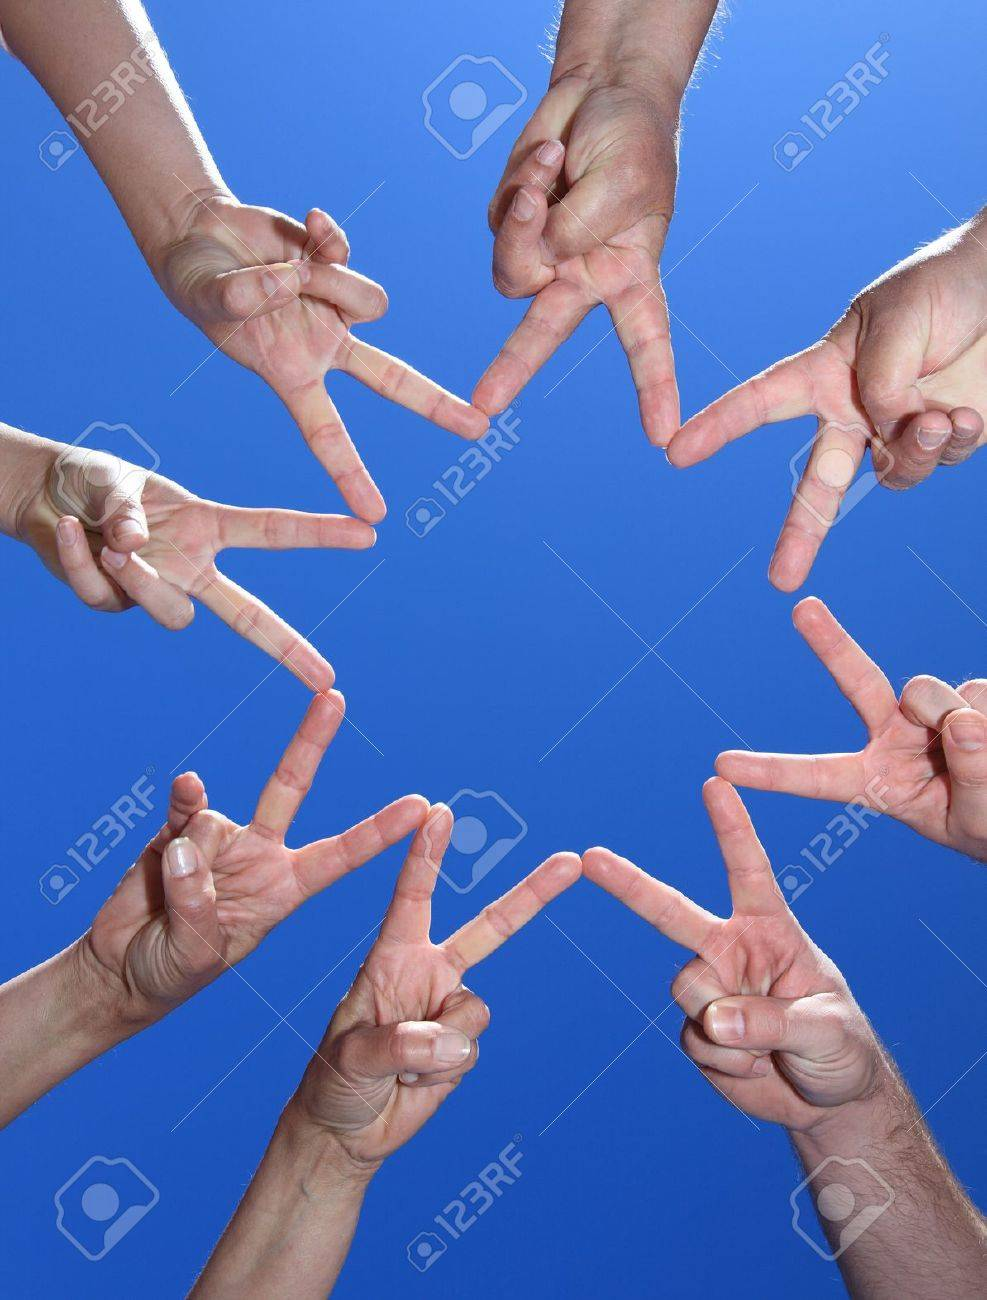 Various peoples hands in front of bright blue sky. Stock Photo - 9726341